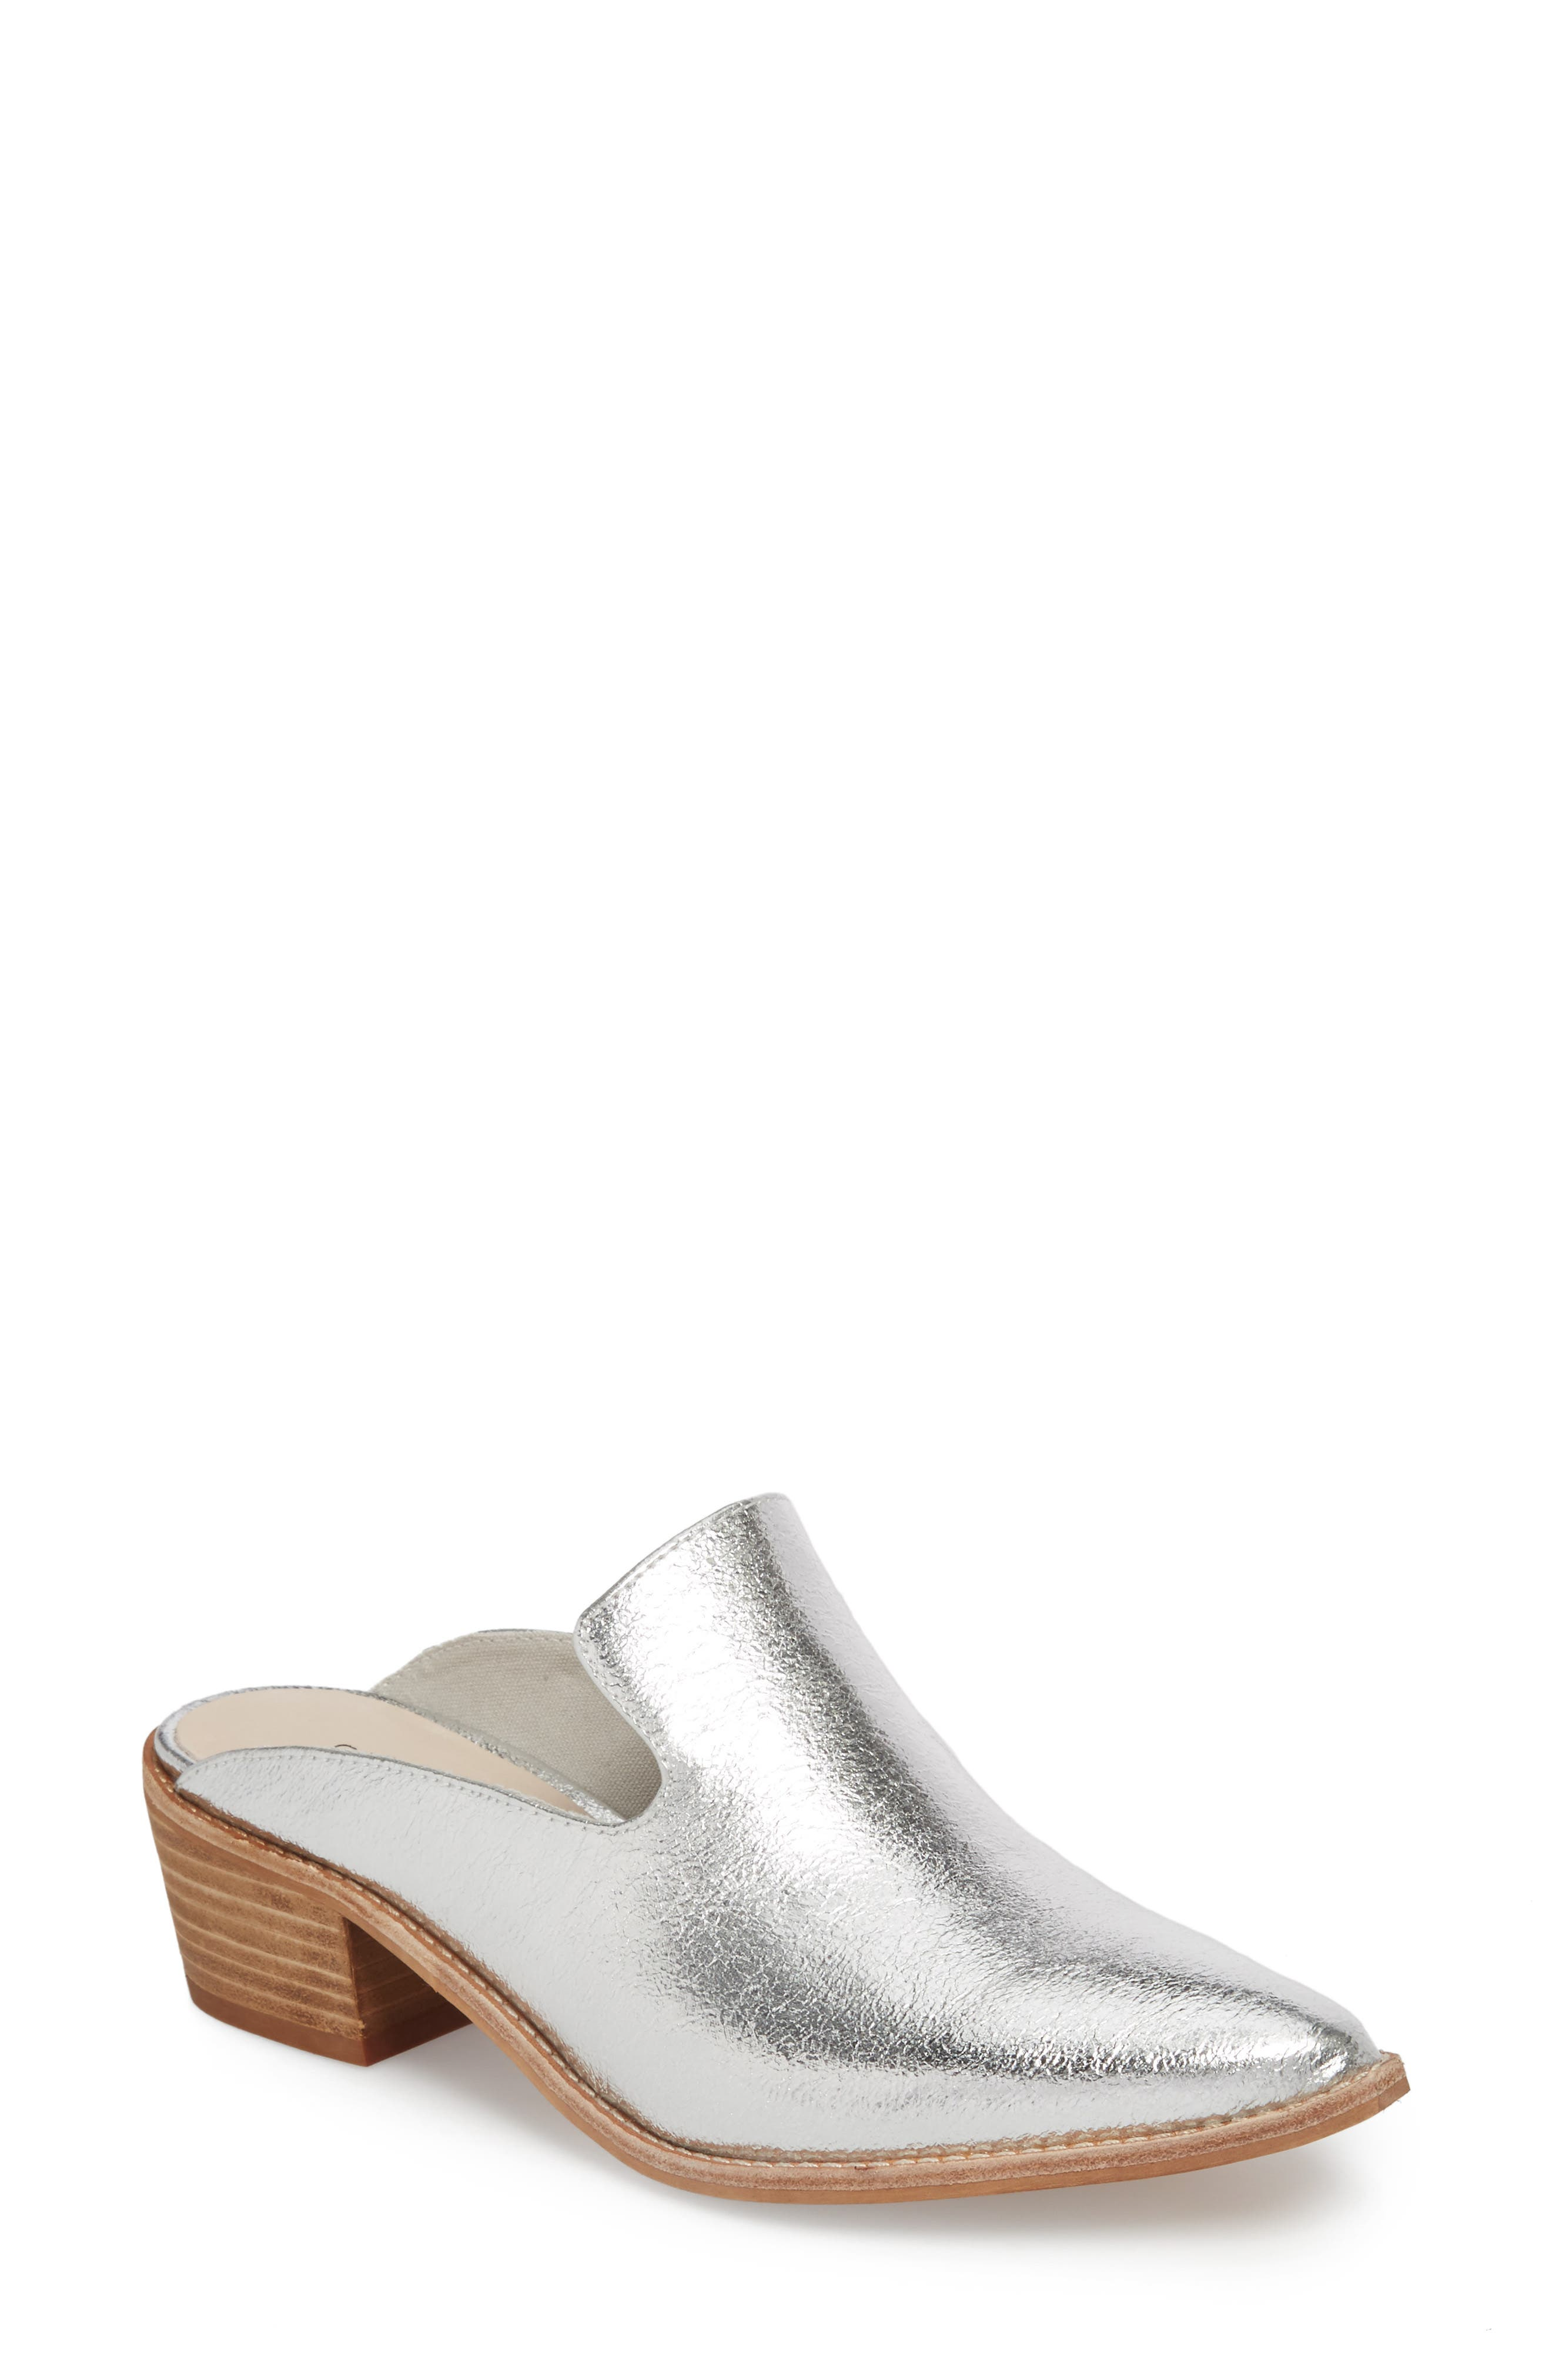 Alternate Image 1 Selected - Chinese Laundry Marnie Loafer Mule (Women)